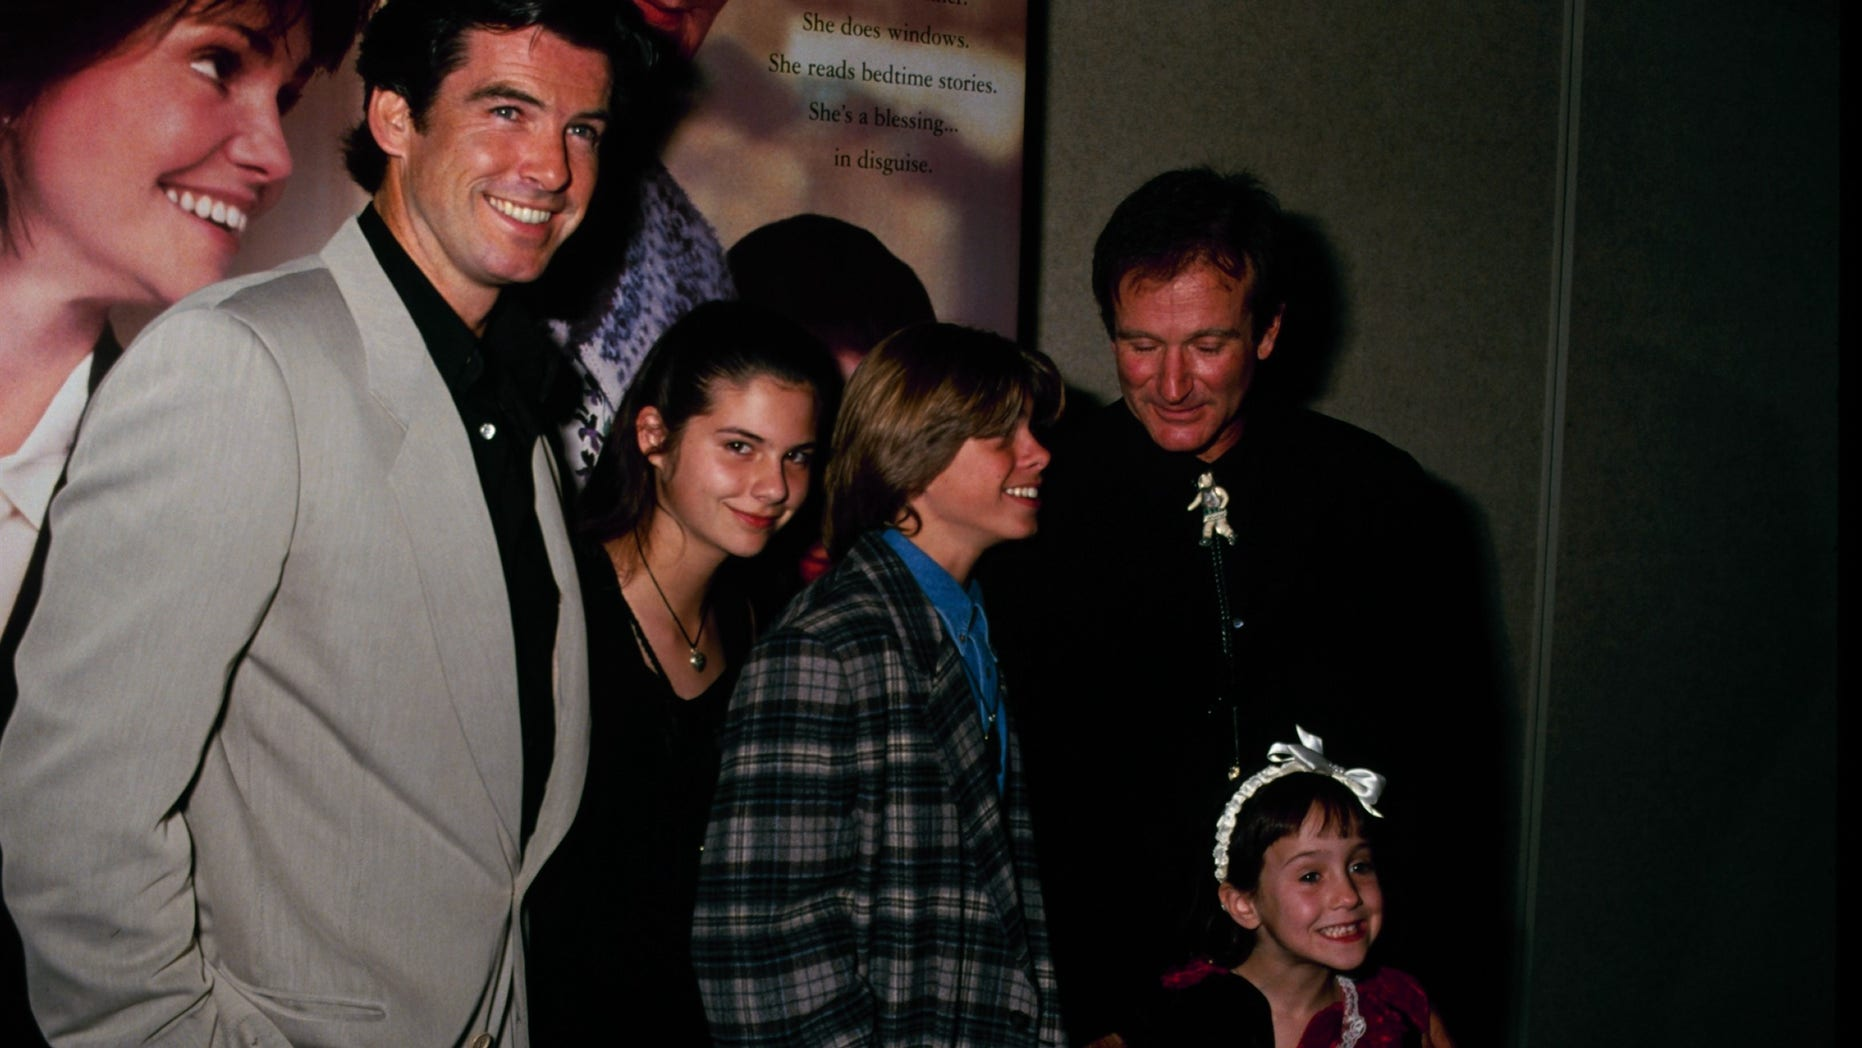 """Pierce Brosnan reunited with some of his """"Mrs. Doubtfire"""" co-stars 25 years after the film was released."""